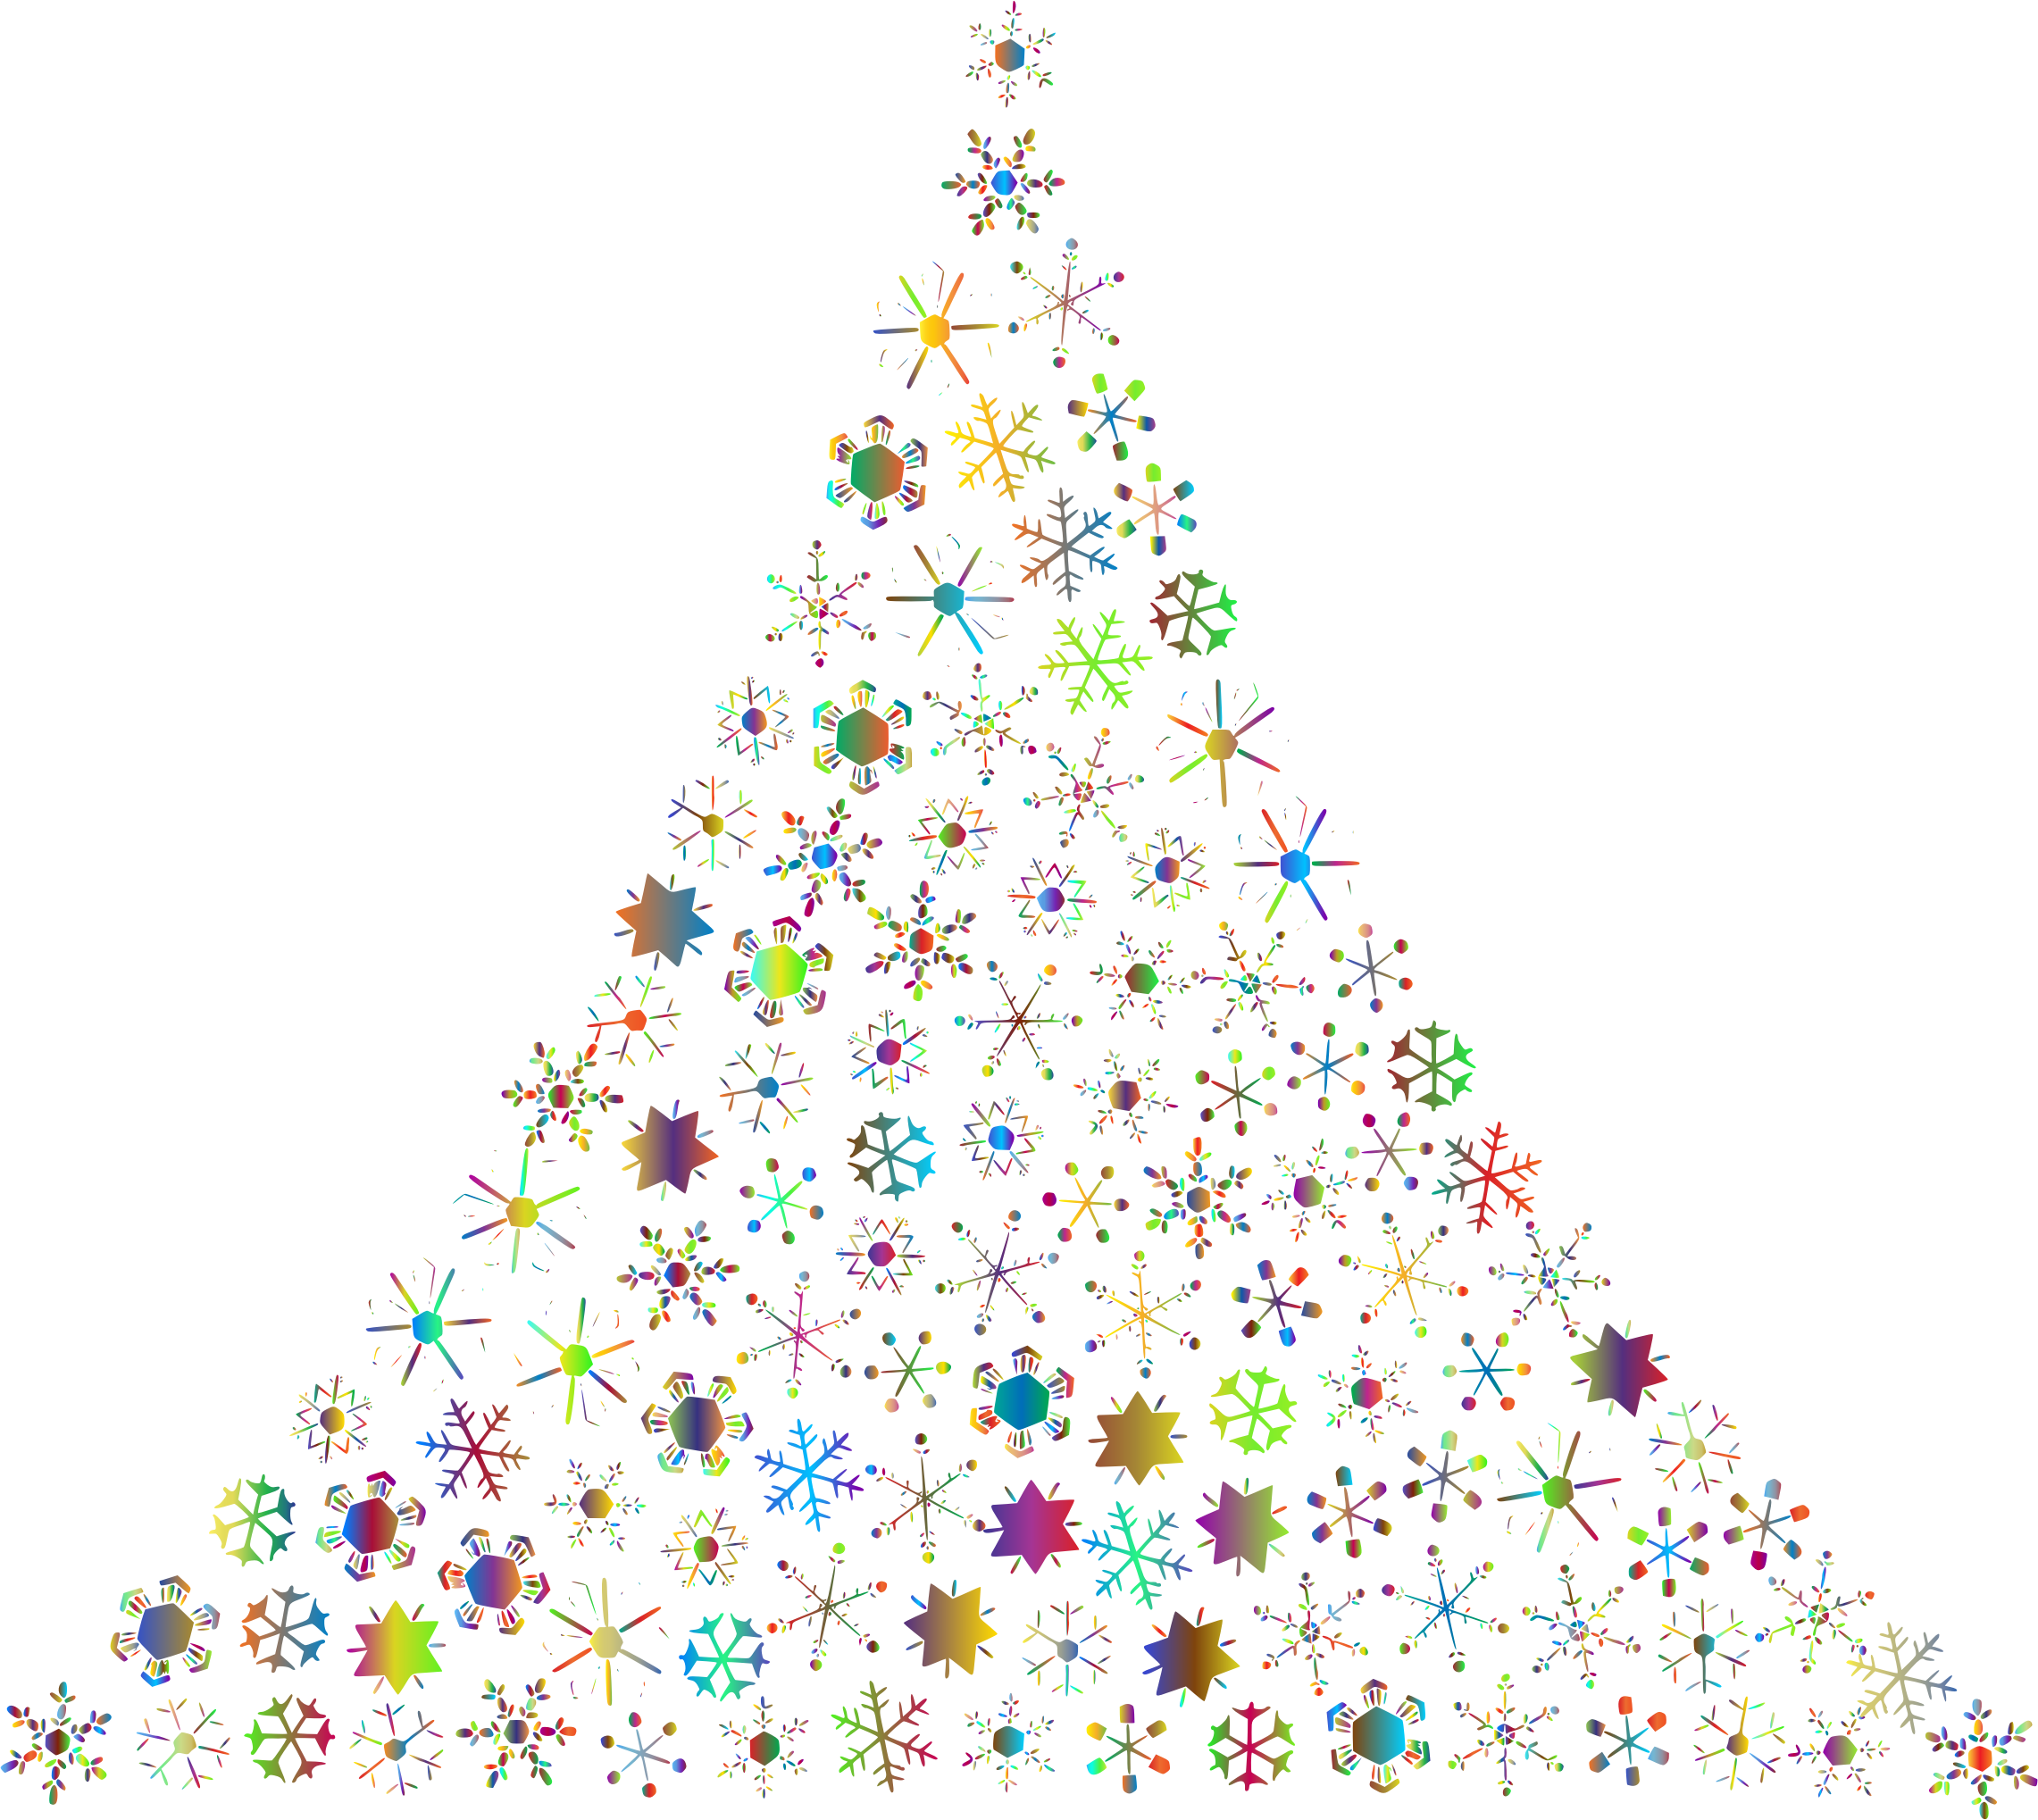 Prismatic Snowflake Christmas Tree 2 No Background By Gdj Whimsical Christmas Art Tree Cartoon Images Christmas Art A green christmas tree with sparkling lights. prismatic snowflake christmas tree 2 no